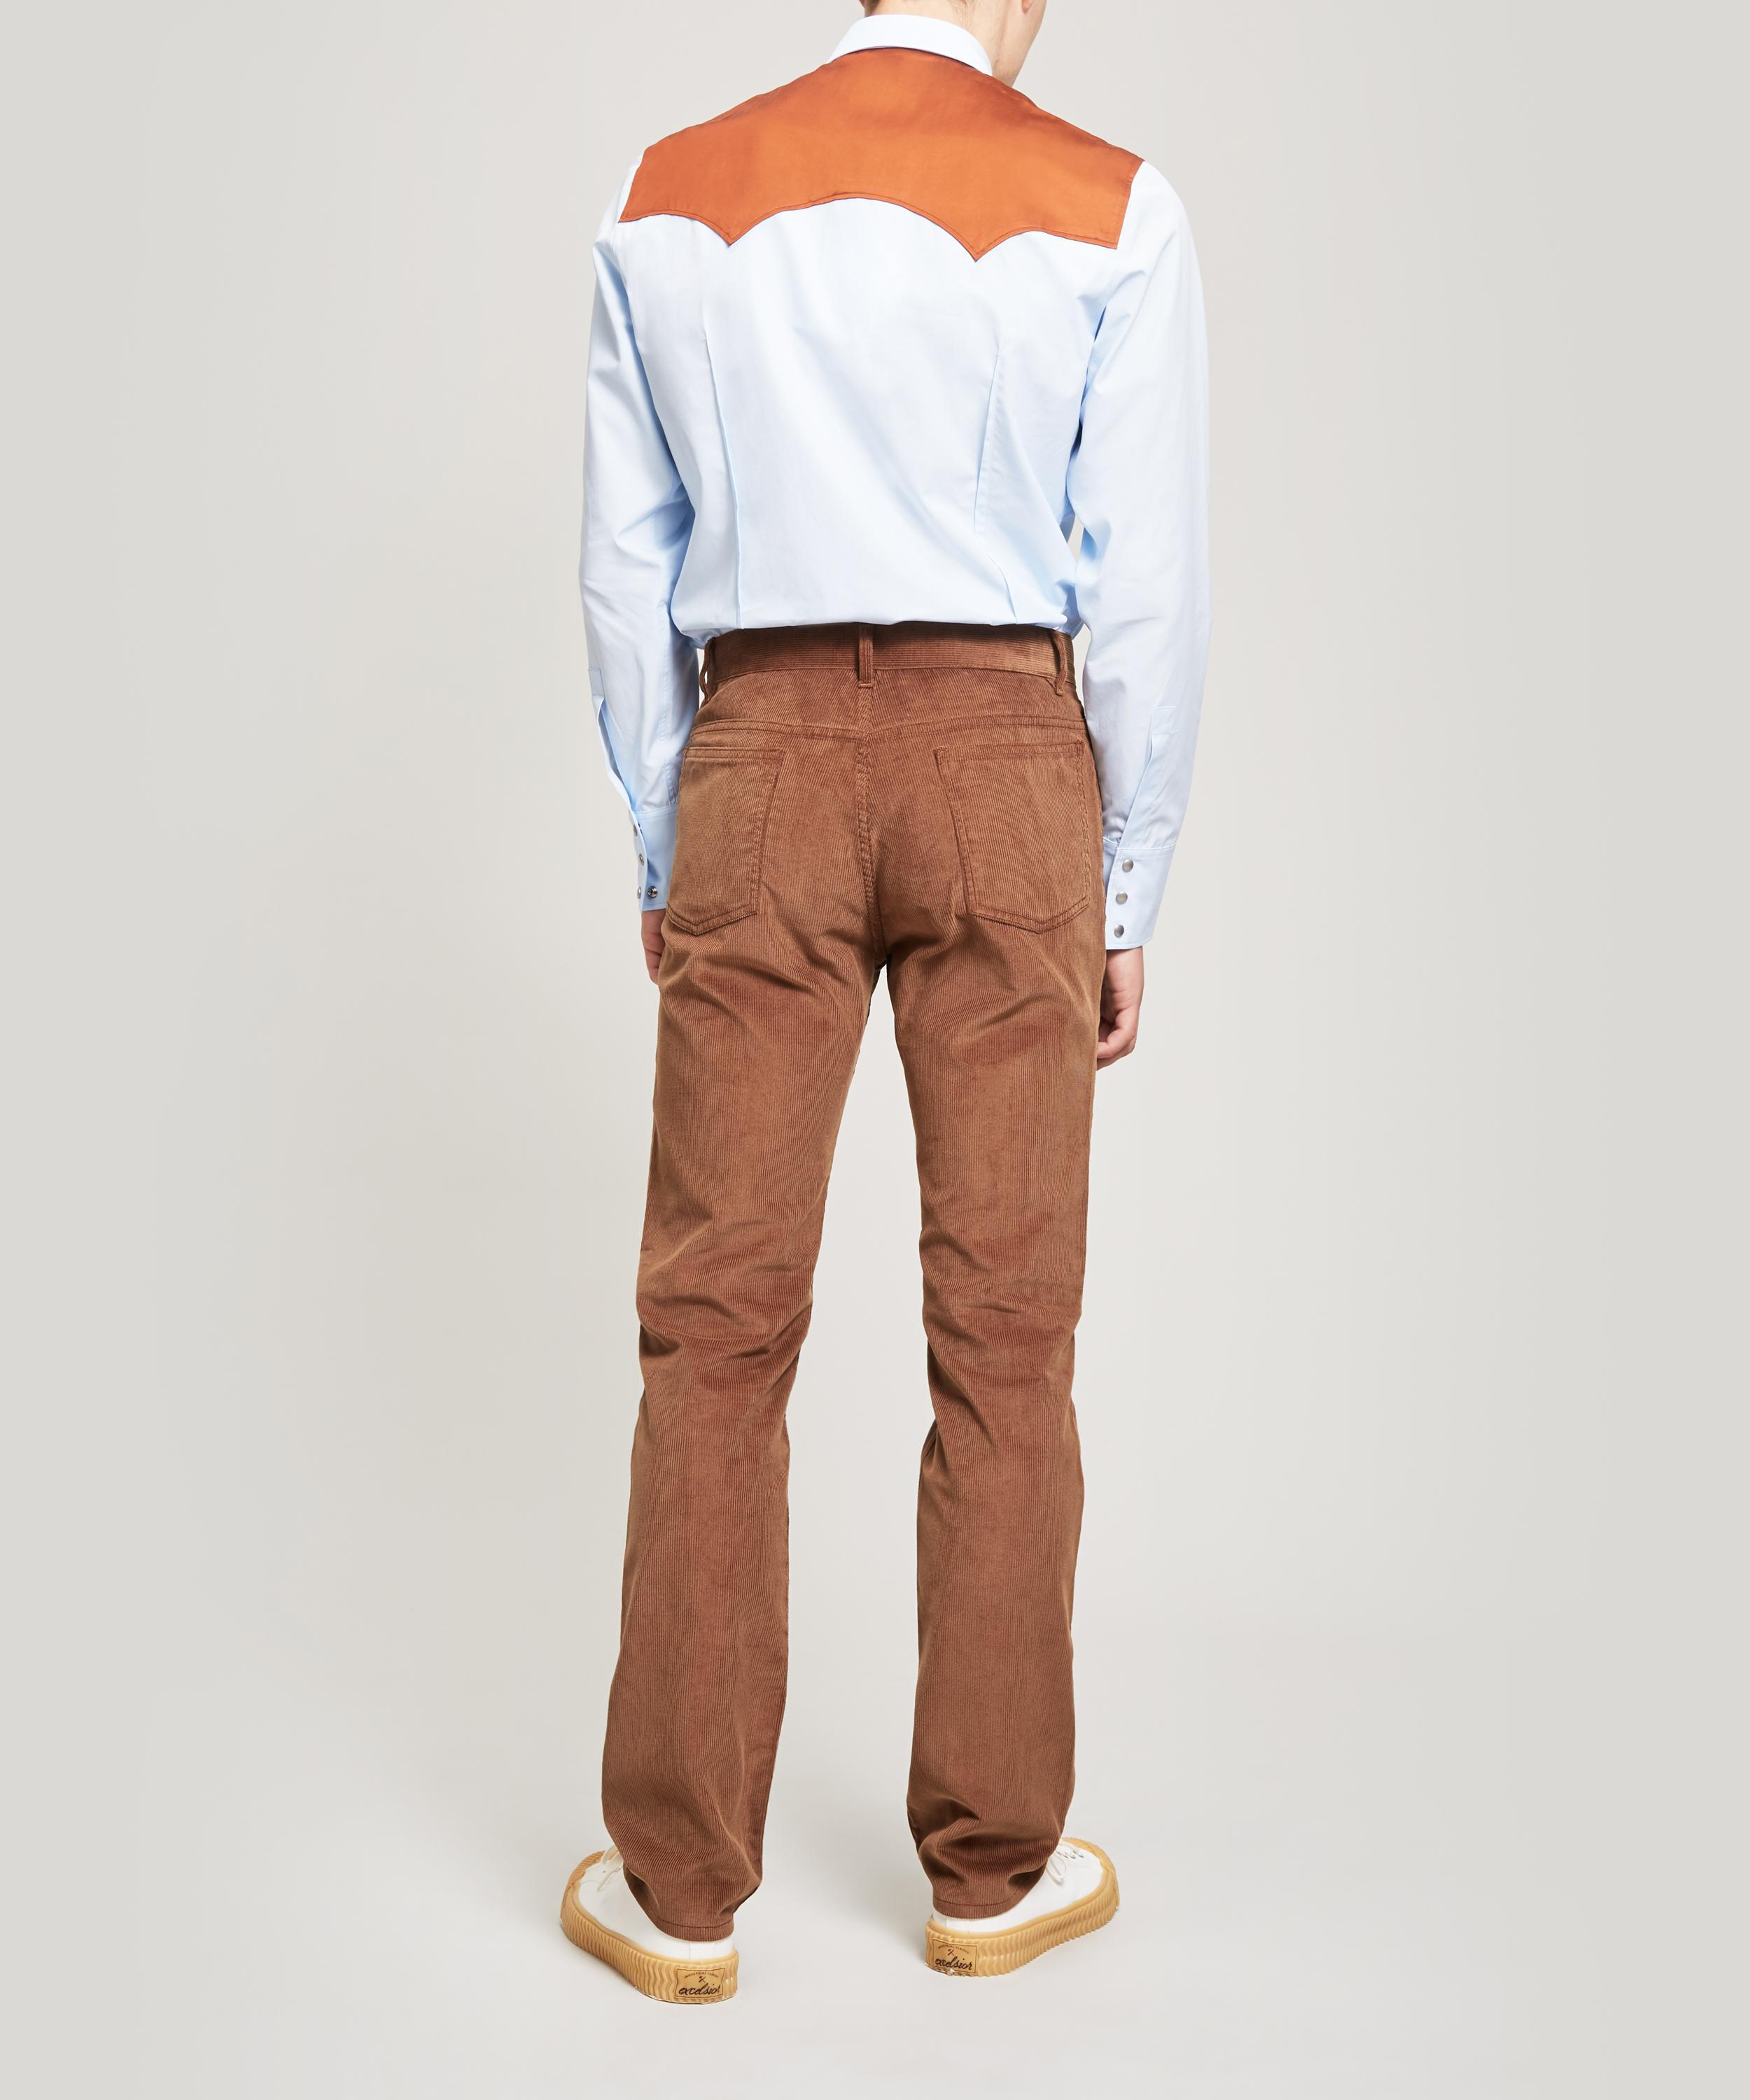 Maison Margiela Straight Leg Corduroy Trousers in Tan (Brown) for Men